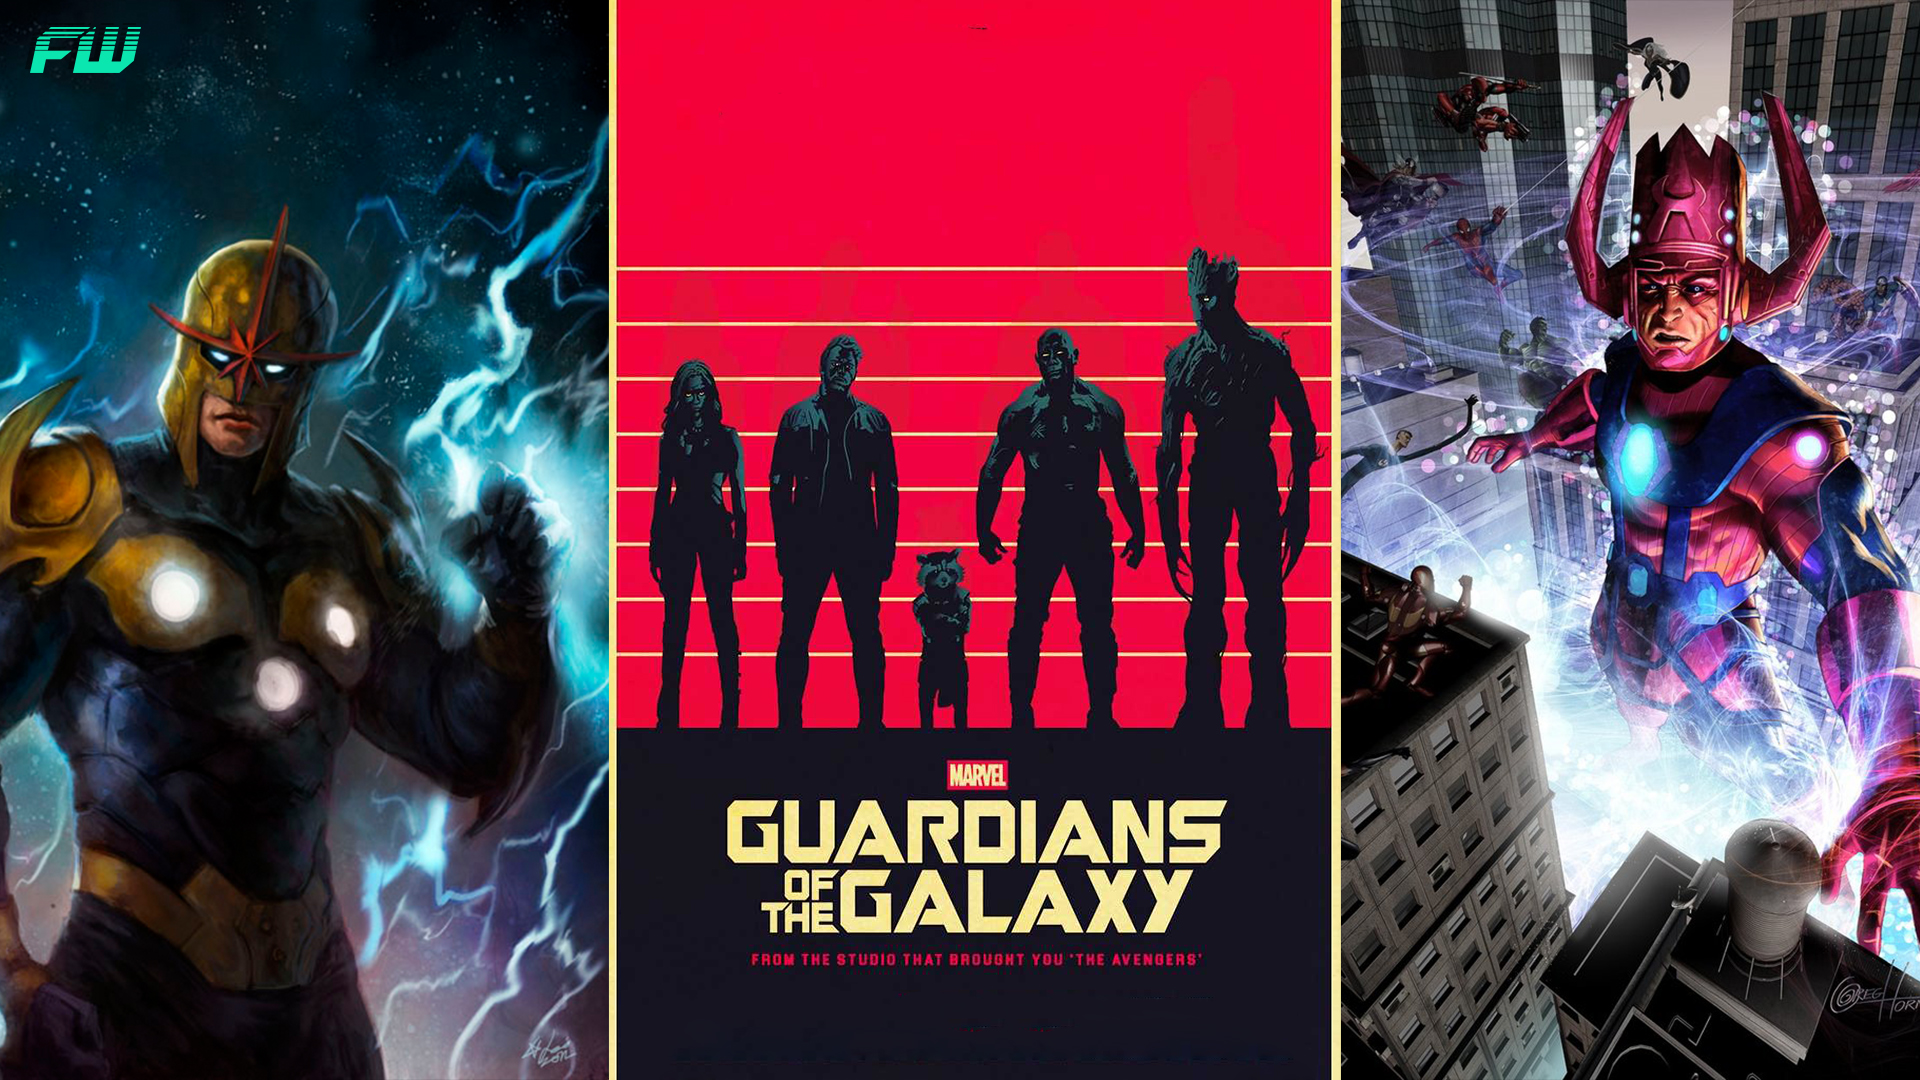 guardians of the galaxy 3 expectations